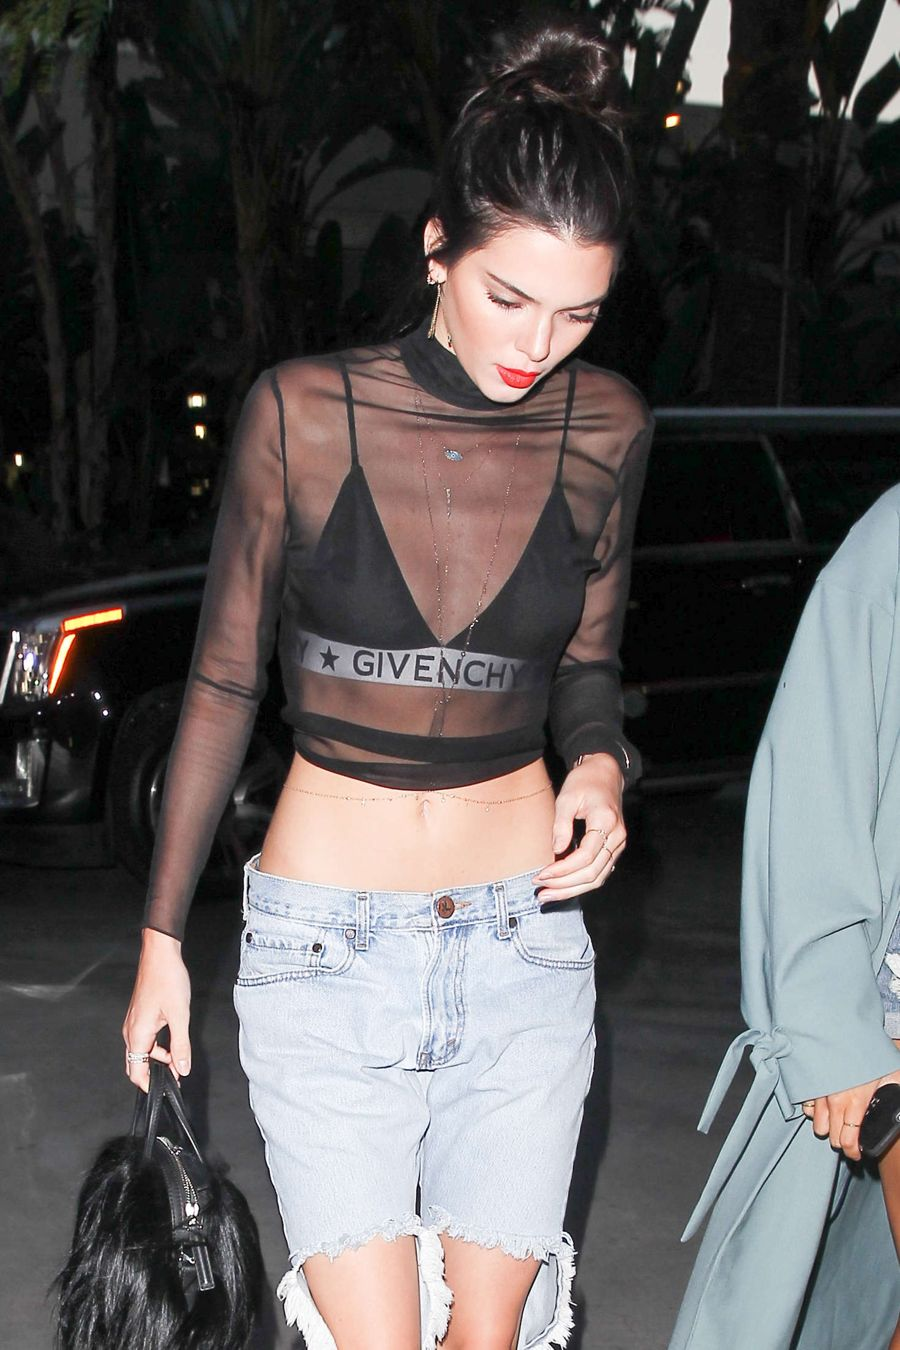 Kendall Jenner at the Adele concert in Los Angeles